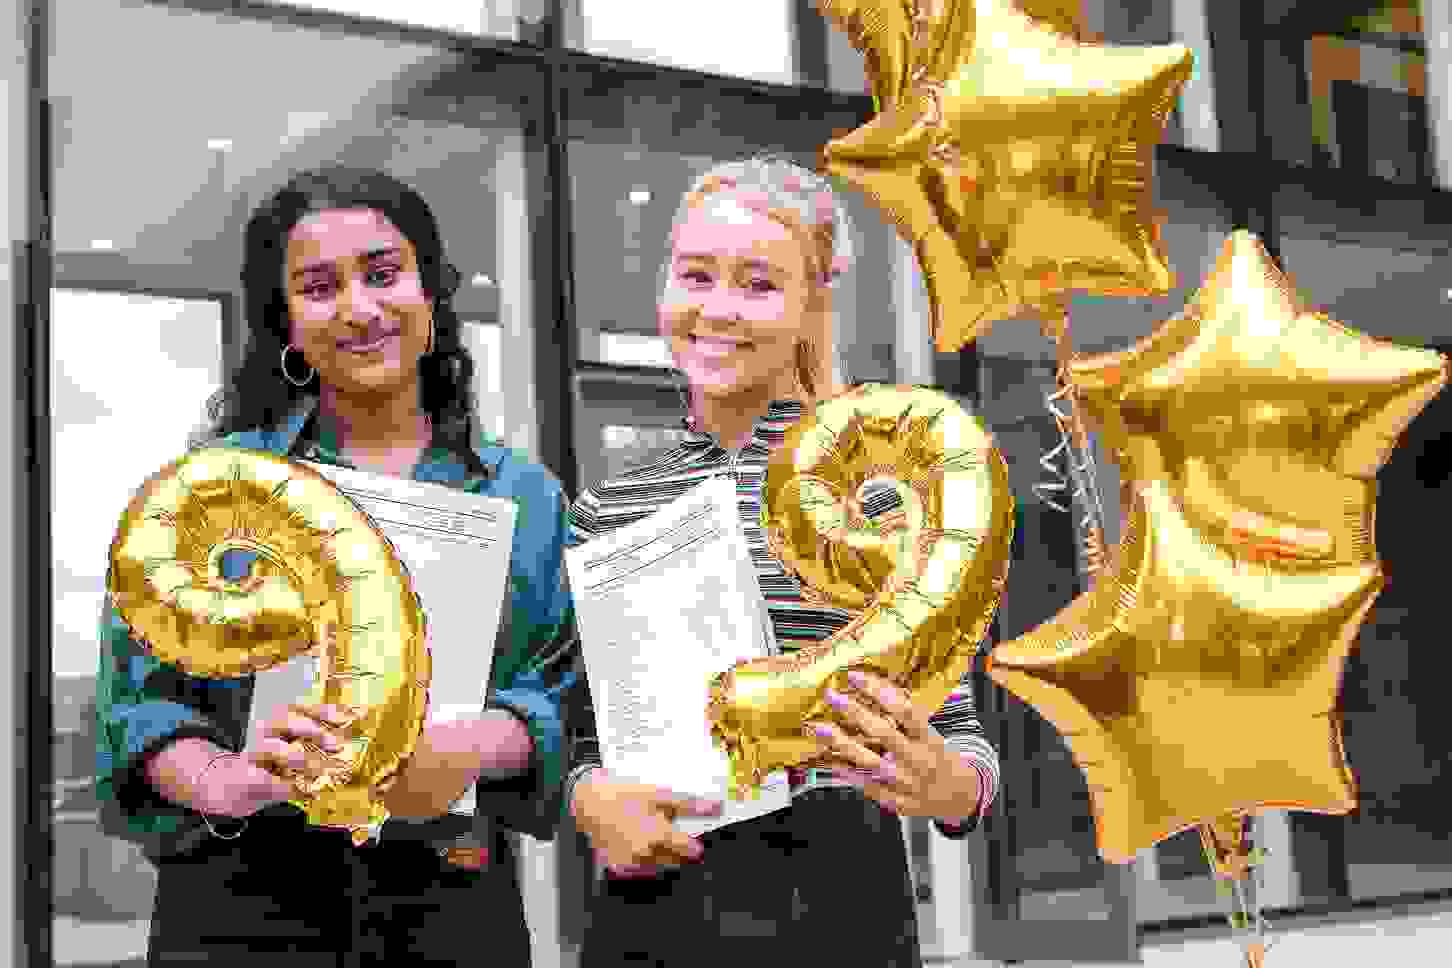 GD GCSE Results Day Wigan girls KKP-000596